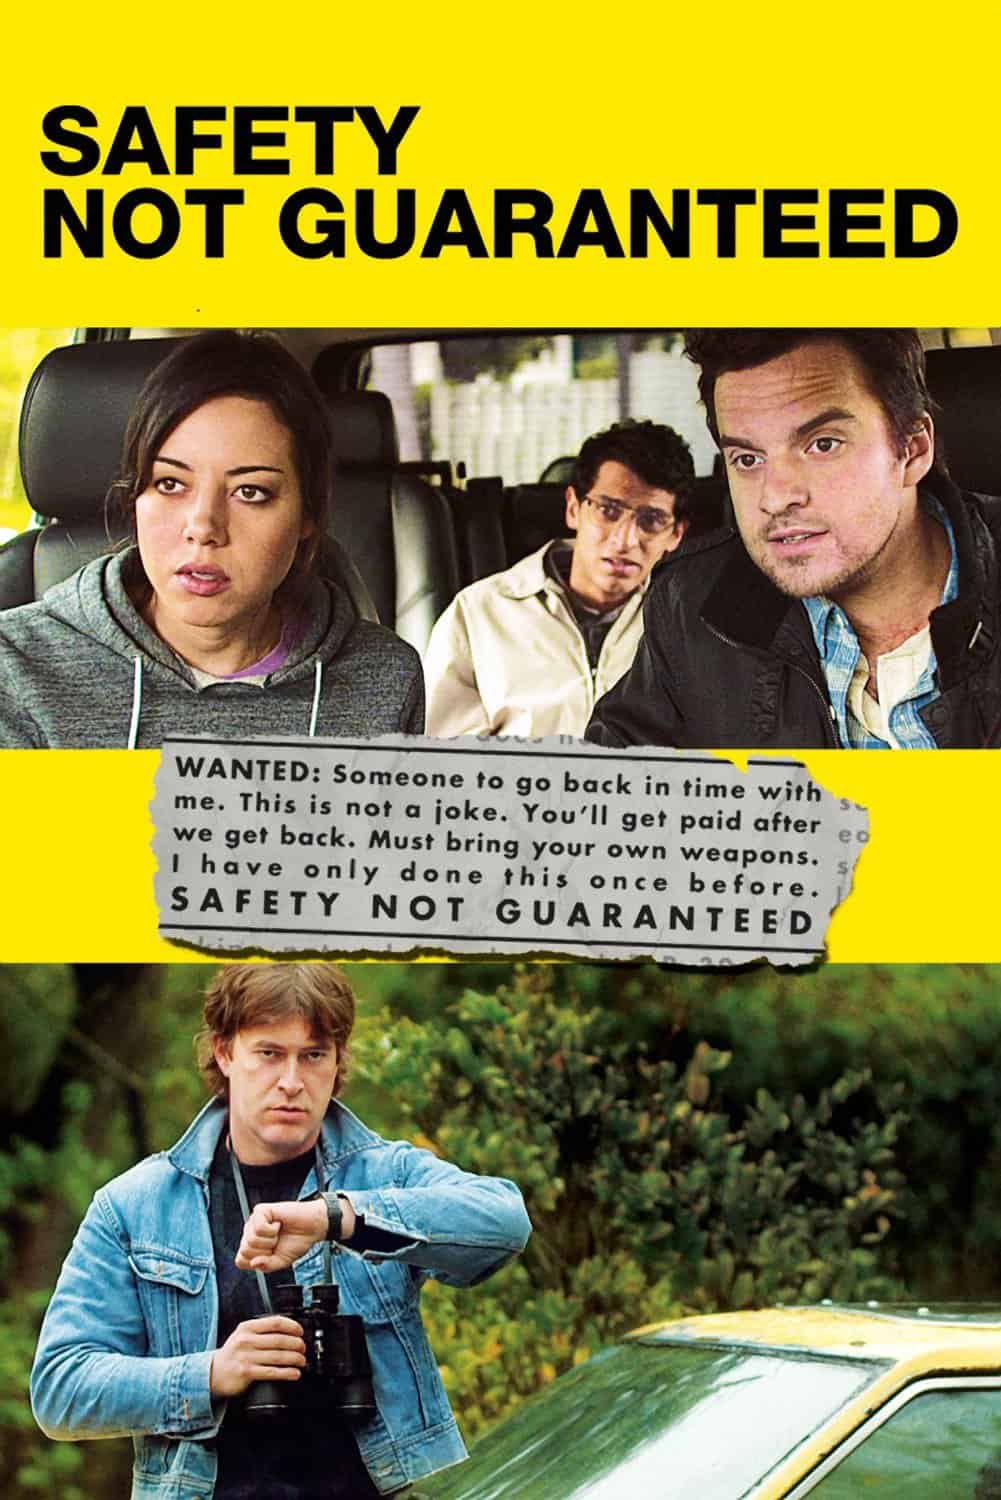 Safety Not Guaranteed, 2012